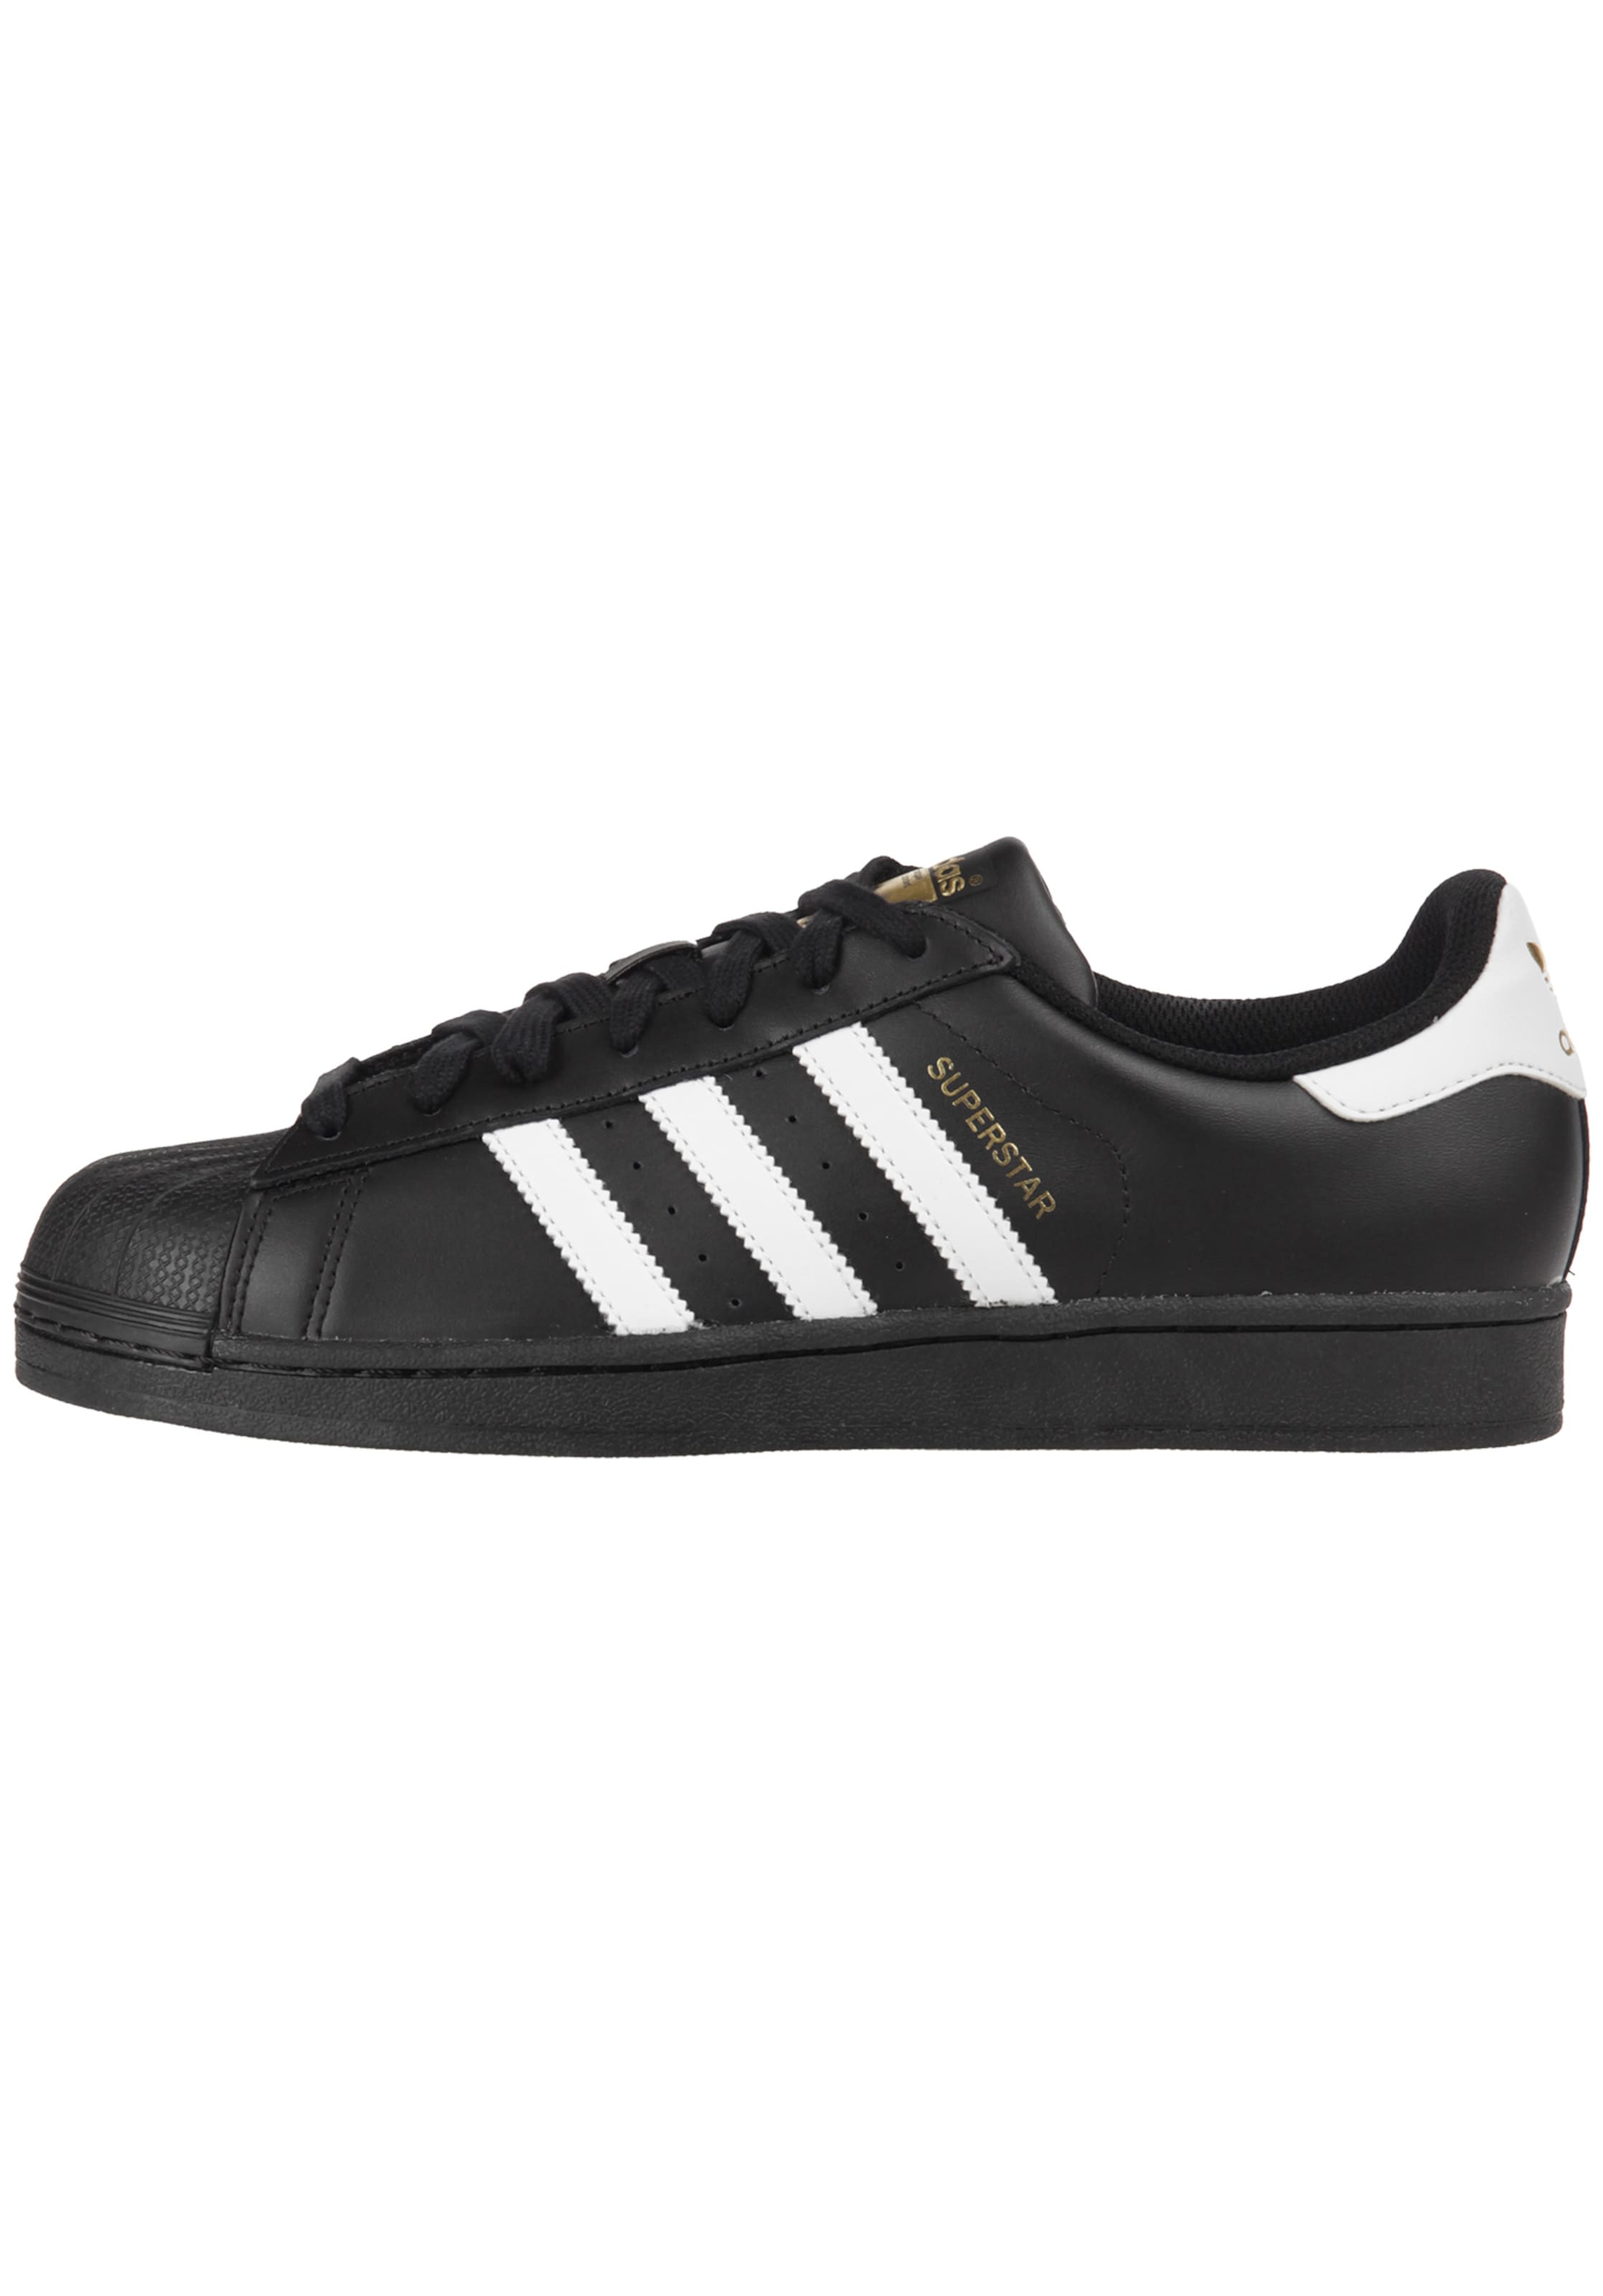 Sneaker In Originals SchwarzWeiß Adidas 'superstar' 4ARS3Lq5cj